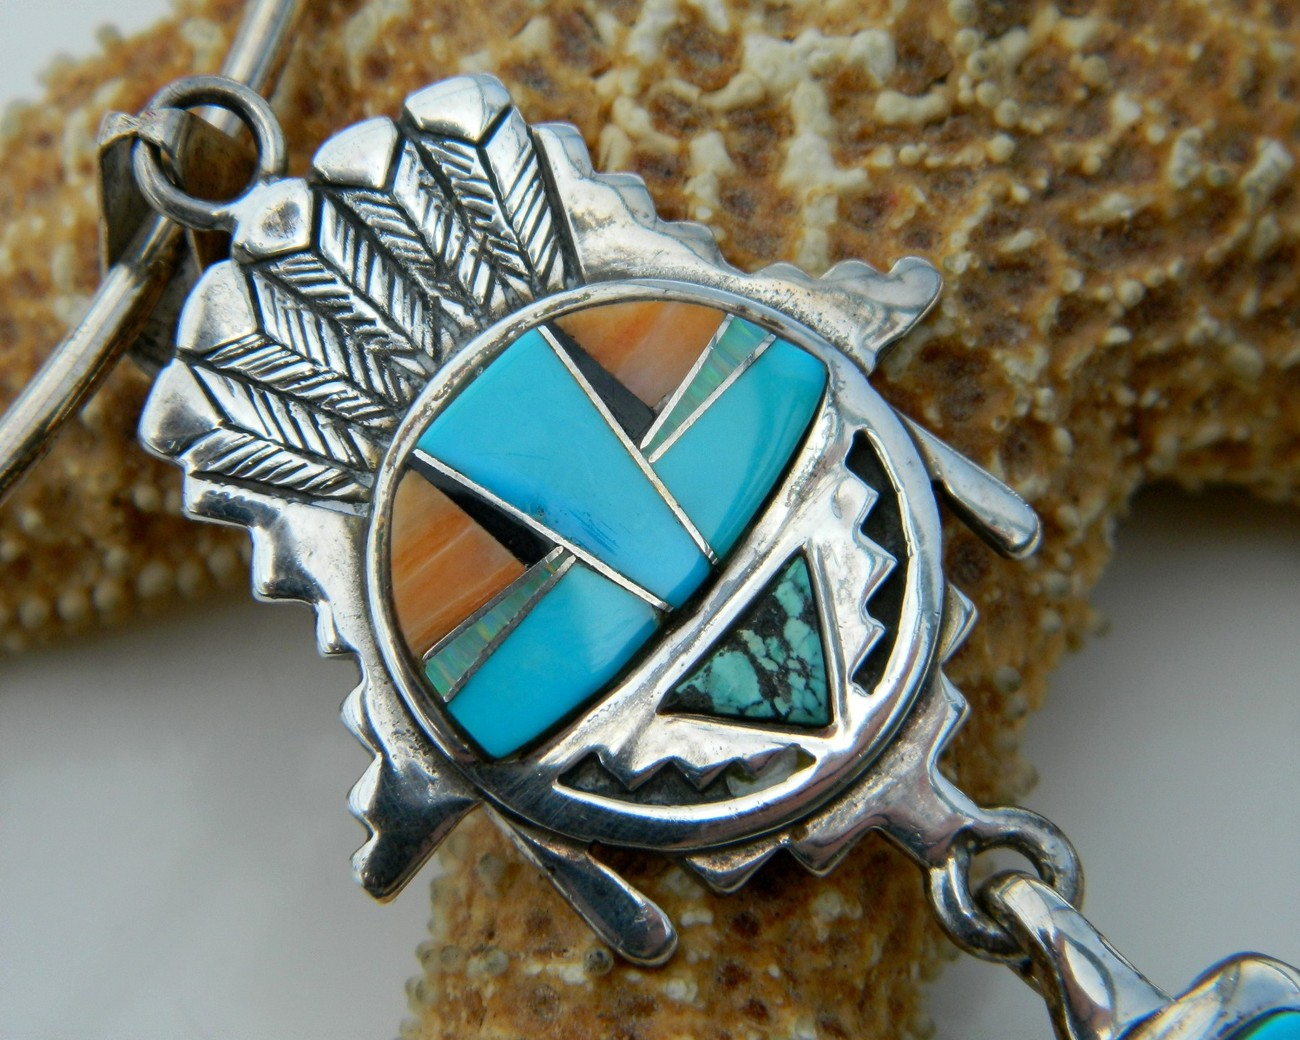 Calvin_begay_pendant_necklace_sterling_silver_turquoise_native_american